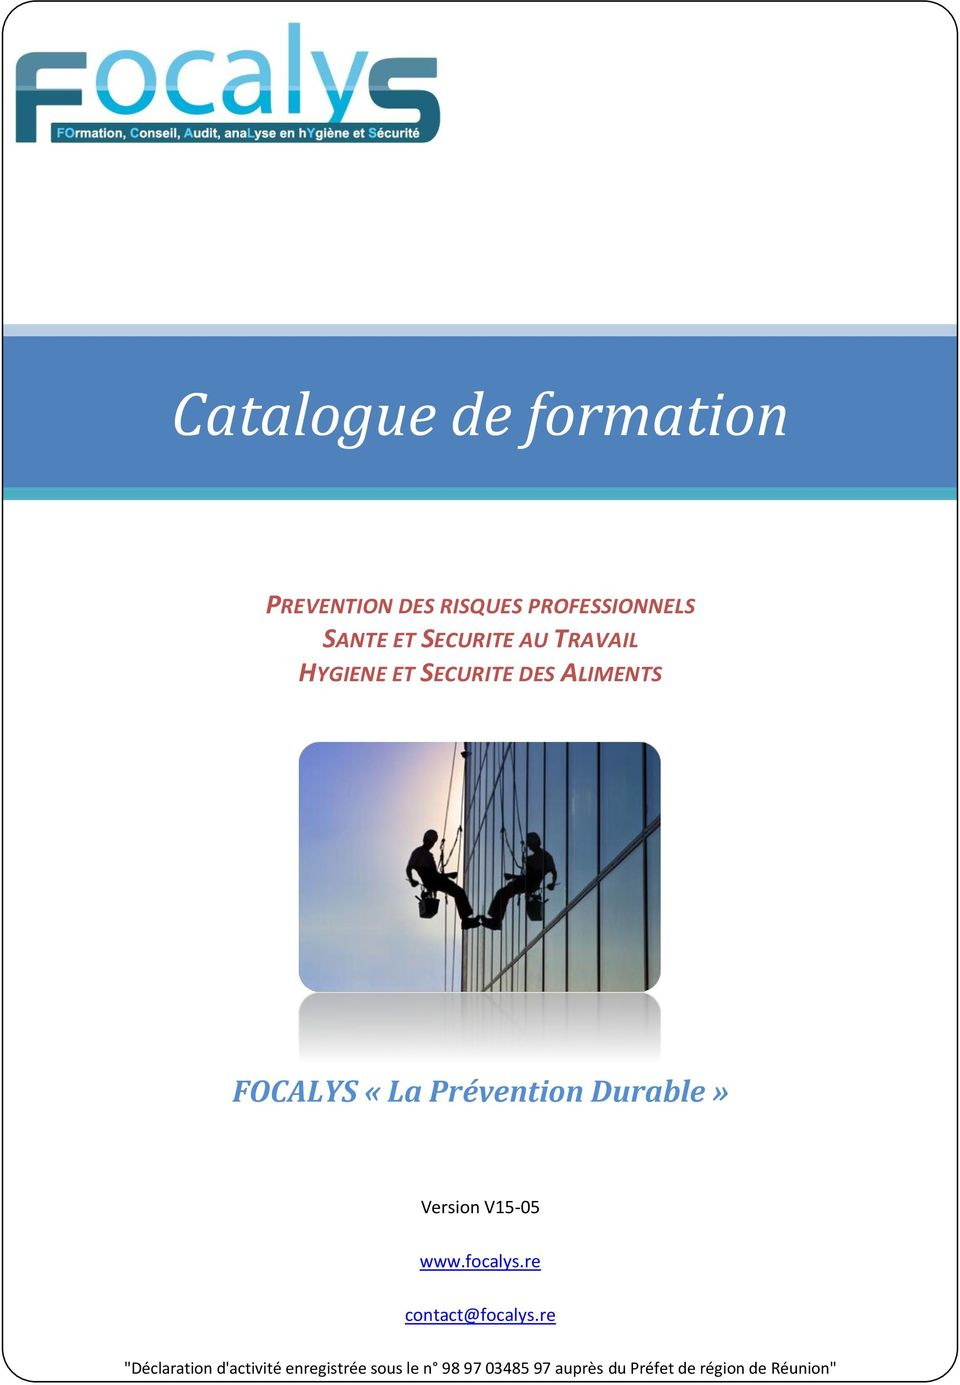 Durable» Version V15-05 www.focalys.re contact@focalys.